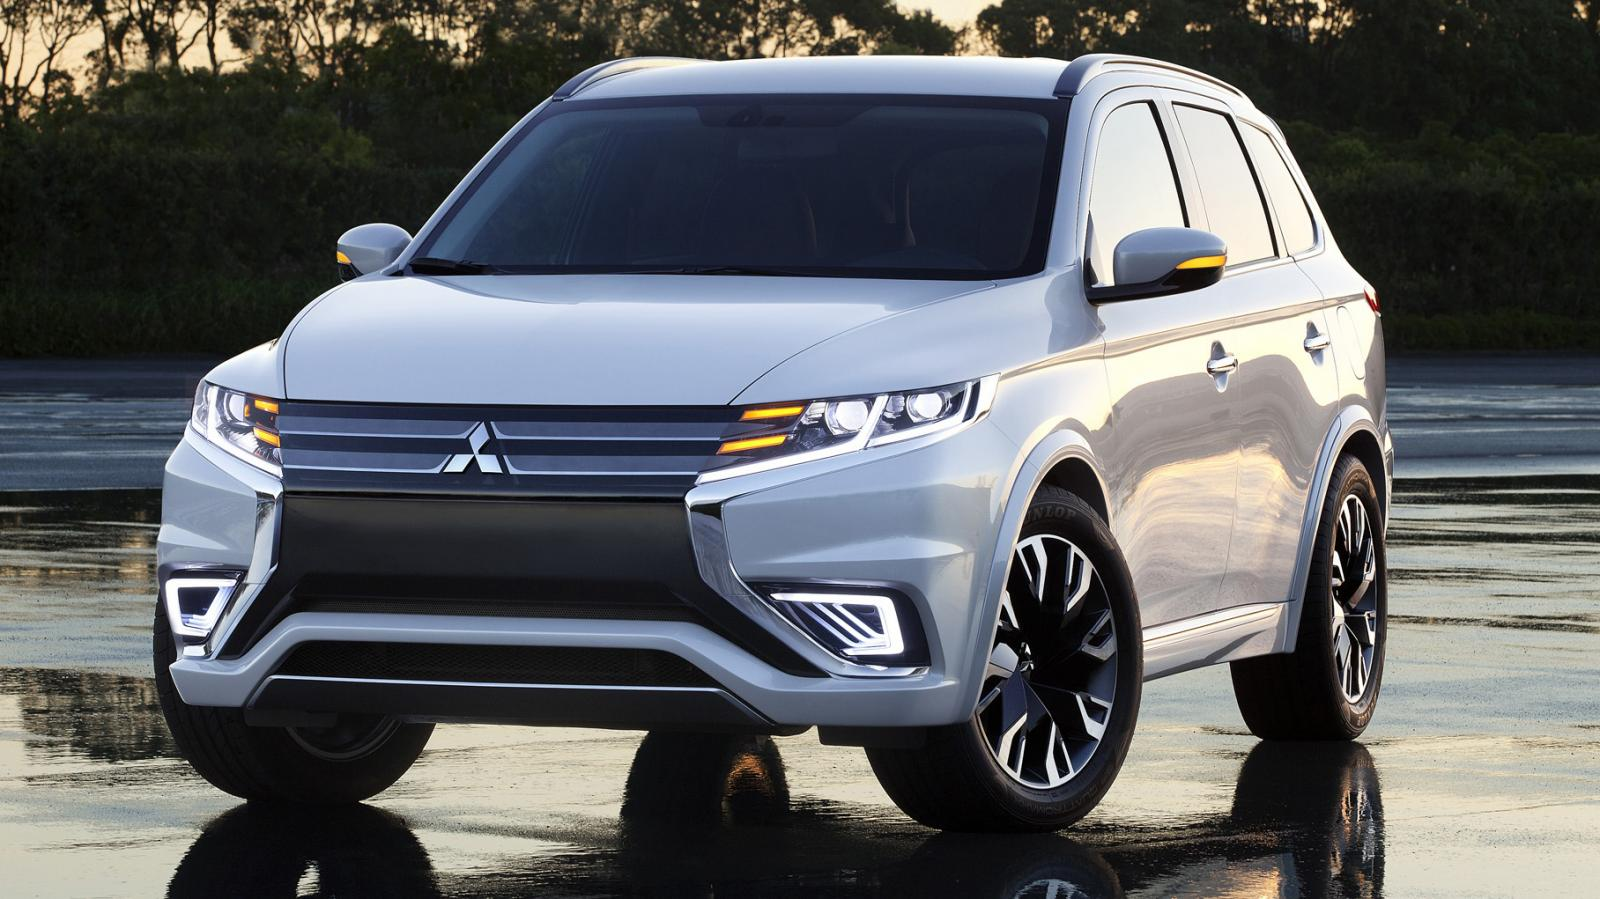 Mitsubishi Outlander Phev Old Vs New Compared Carwow